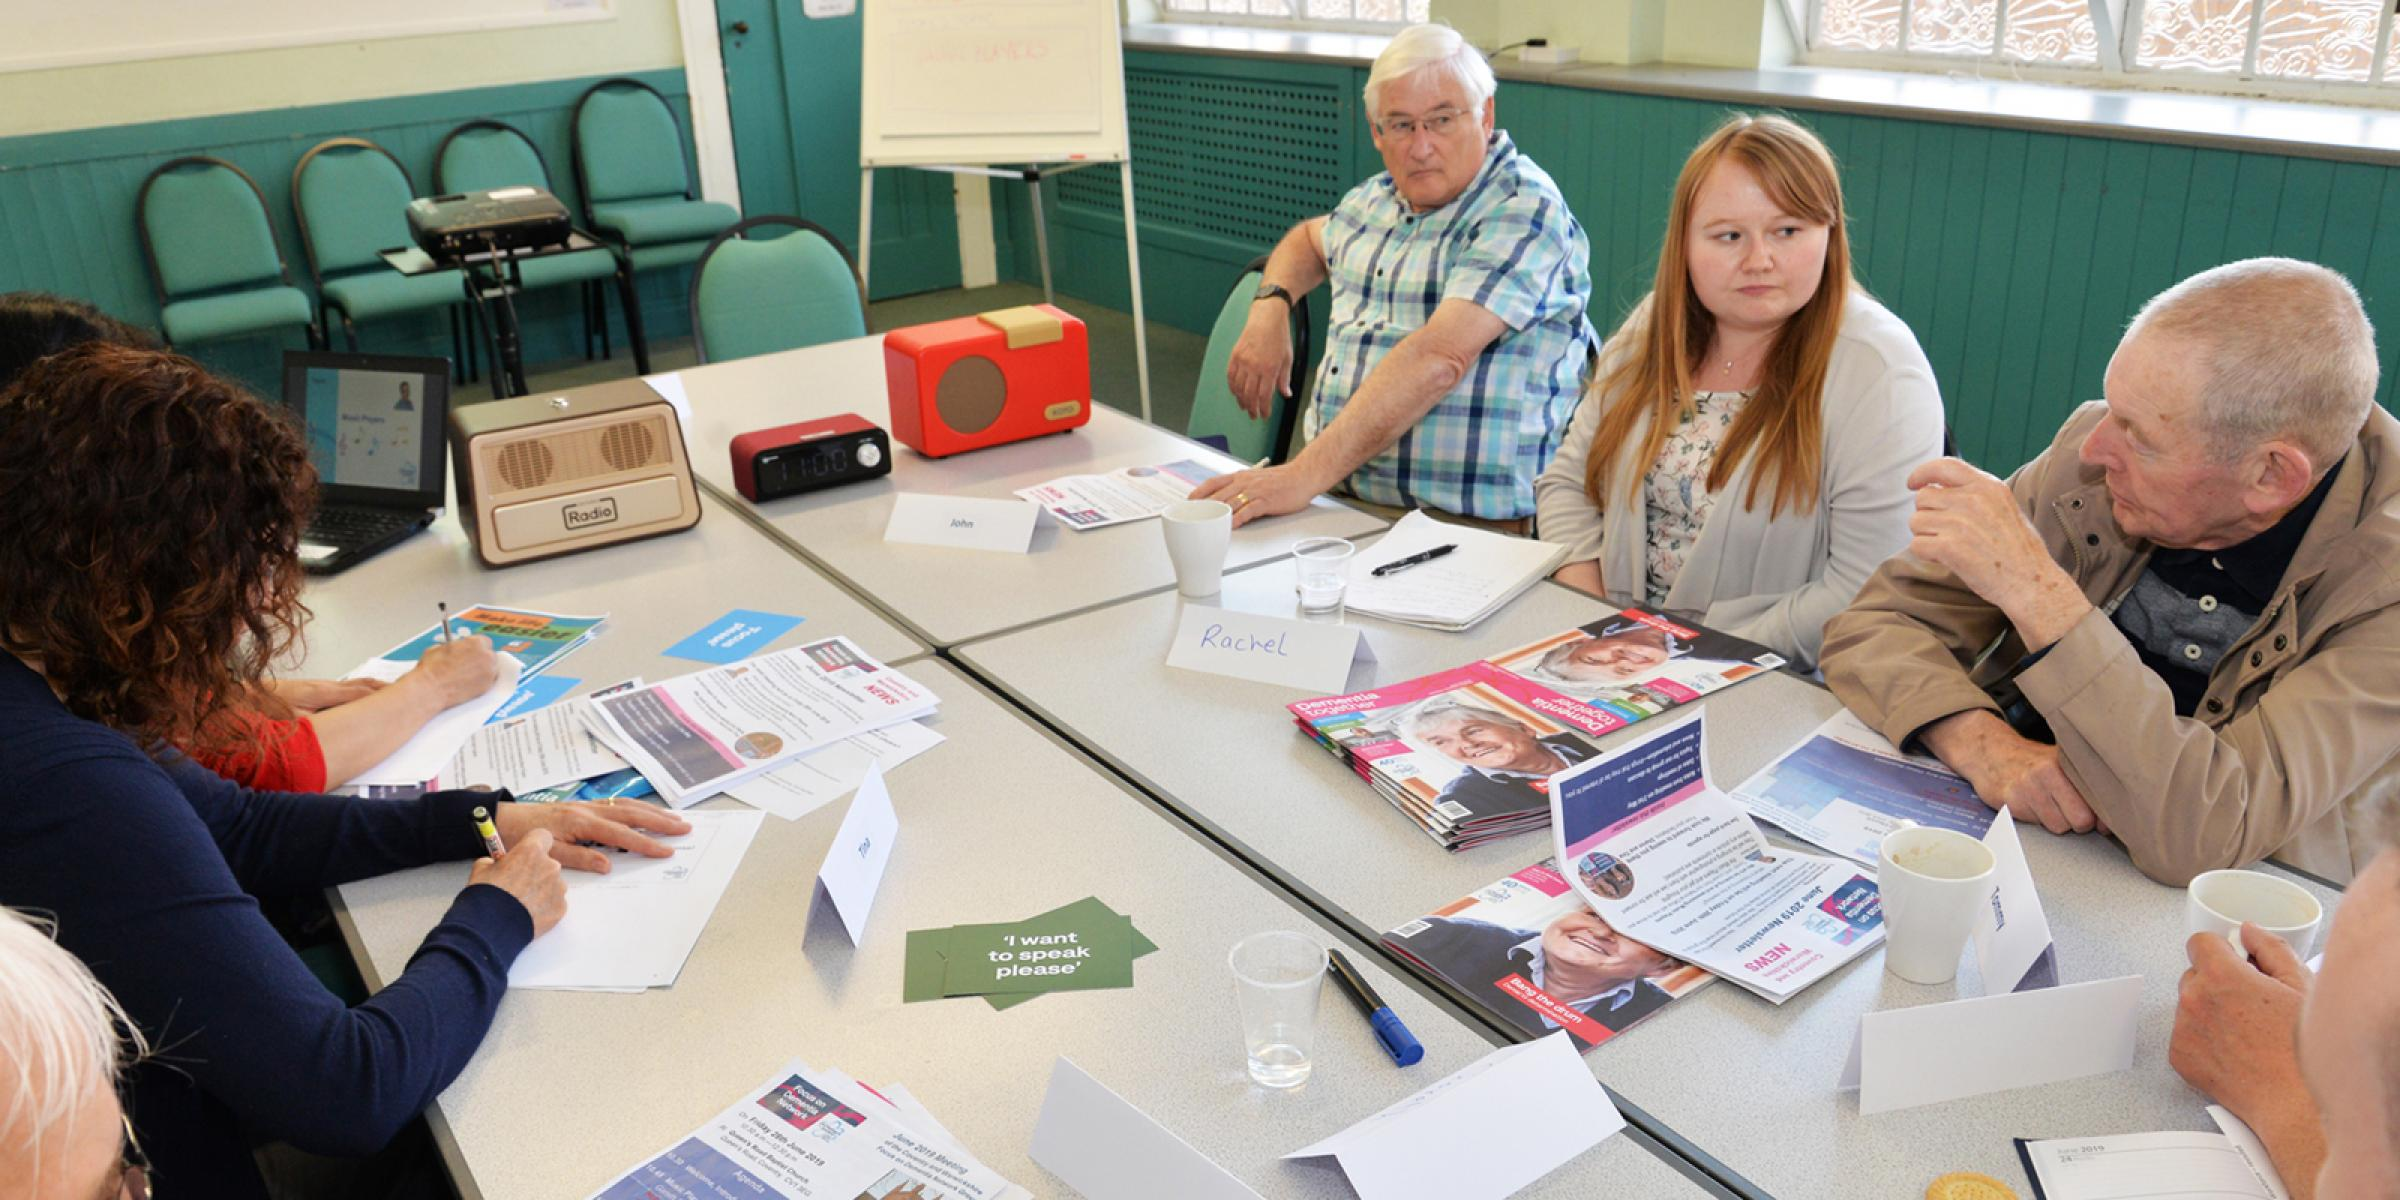 Coventry and Warwickshire's Focus on Dementia Network group